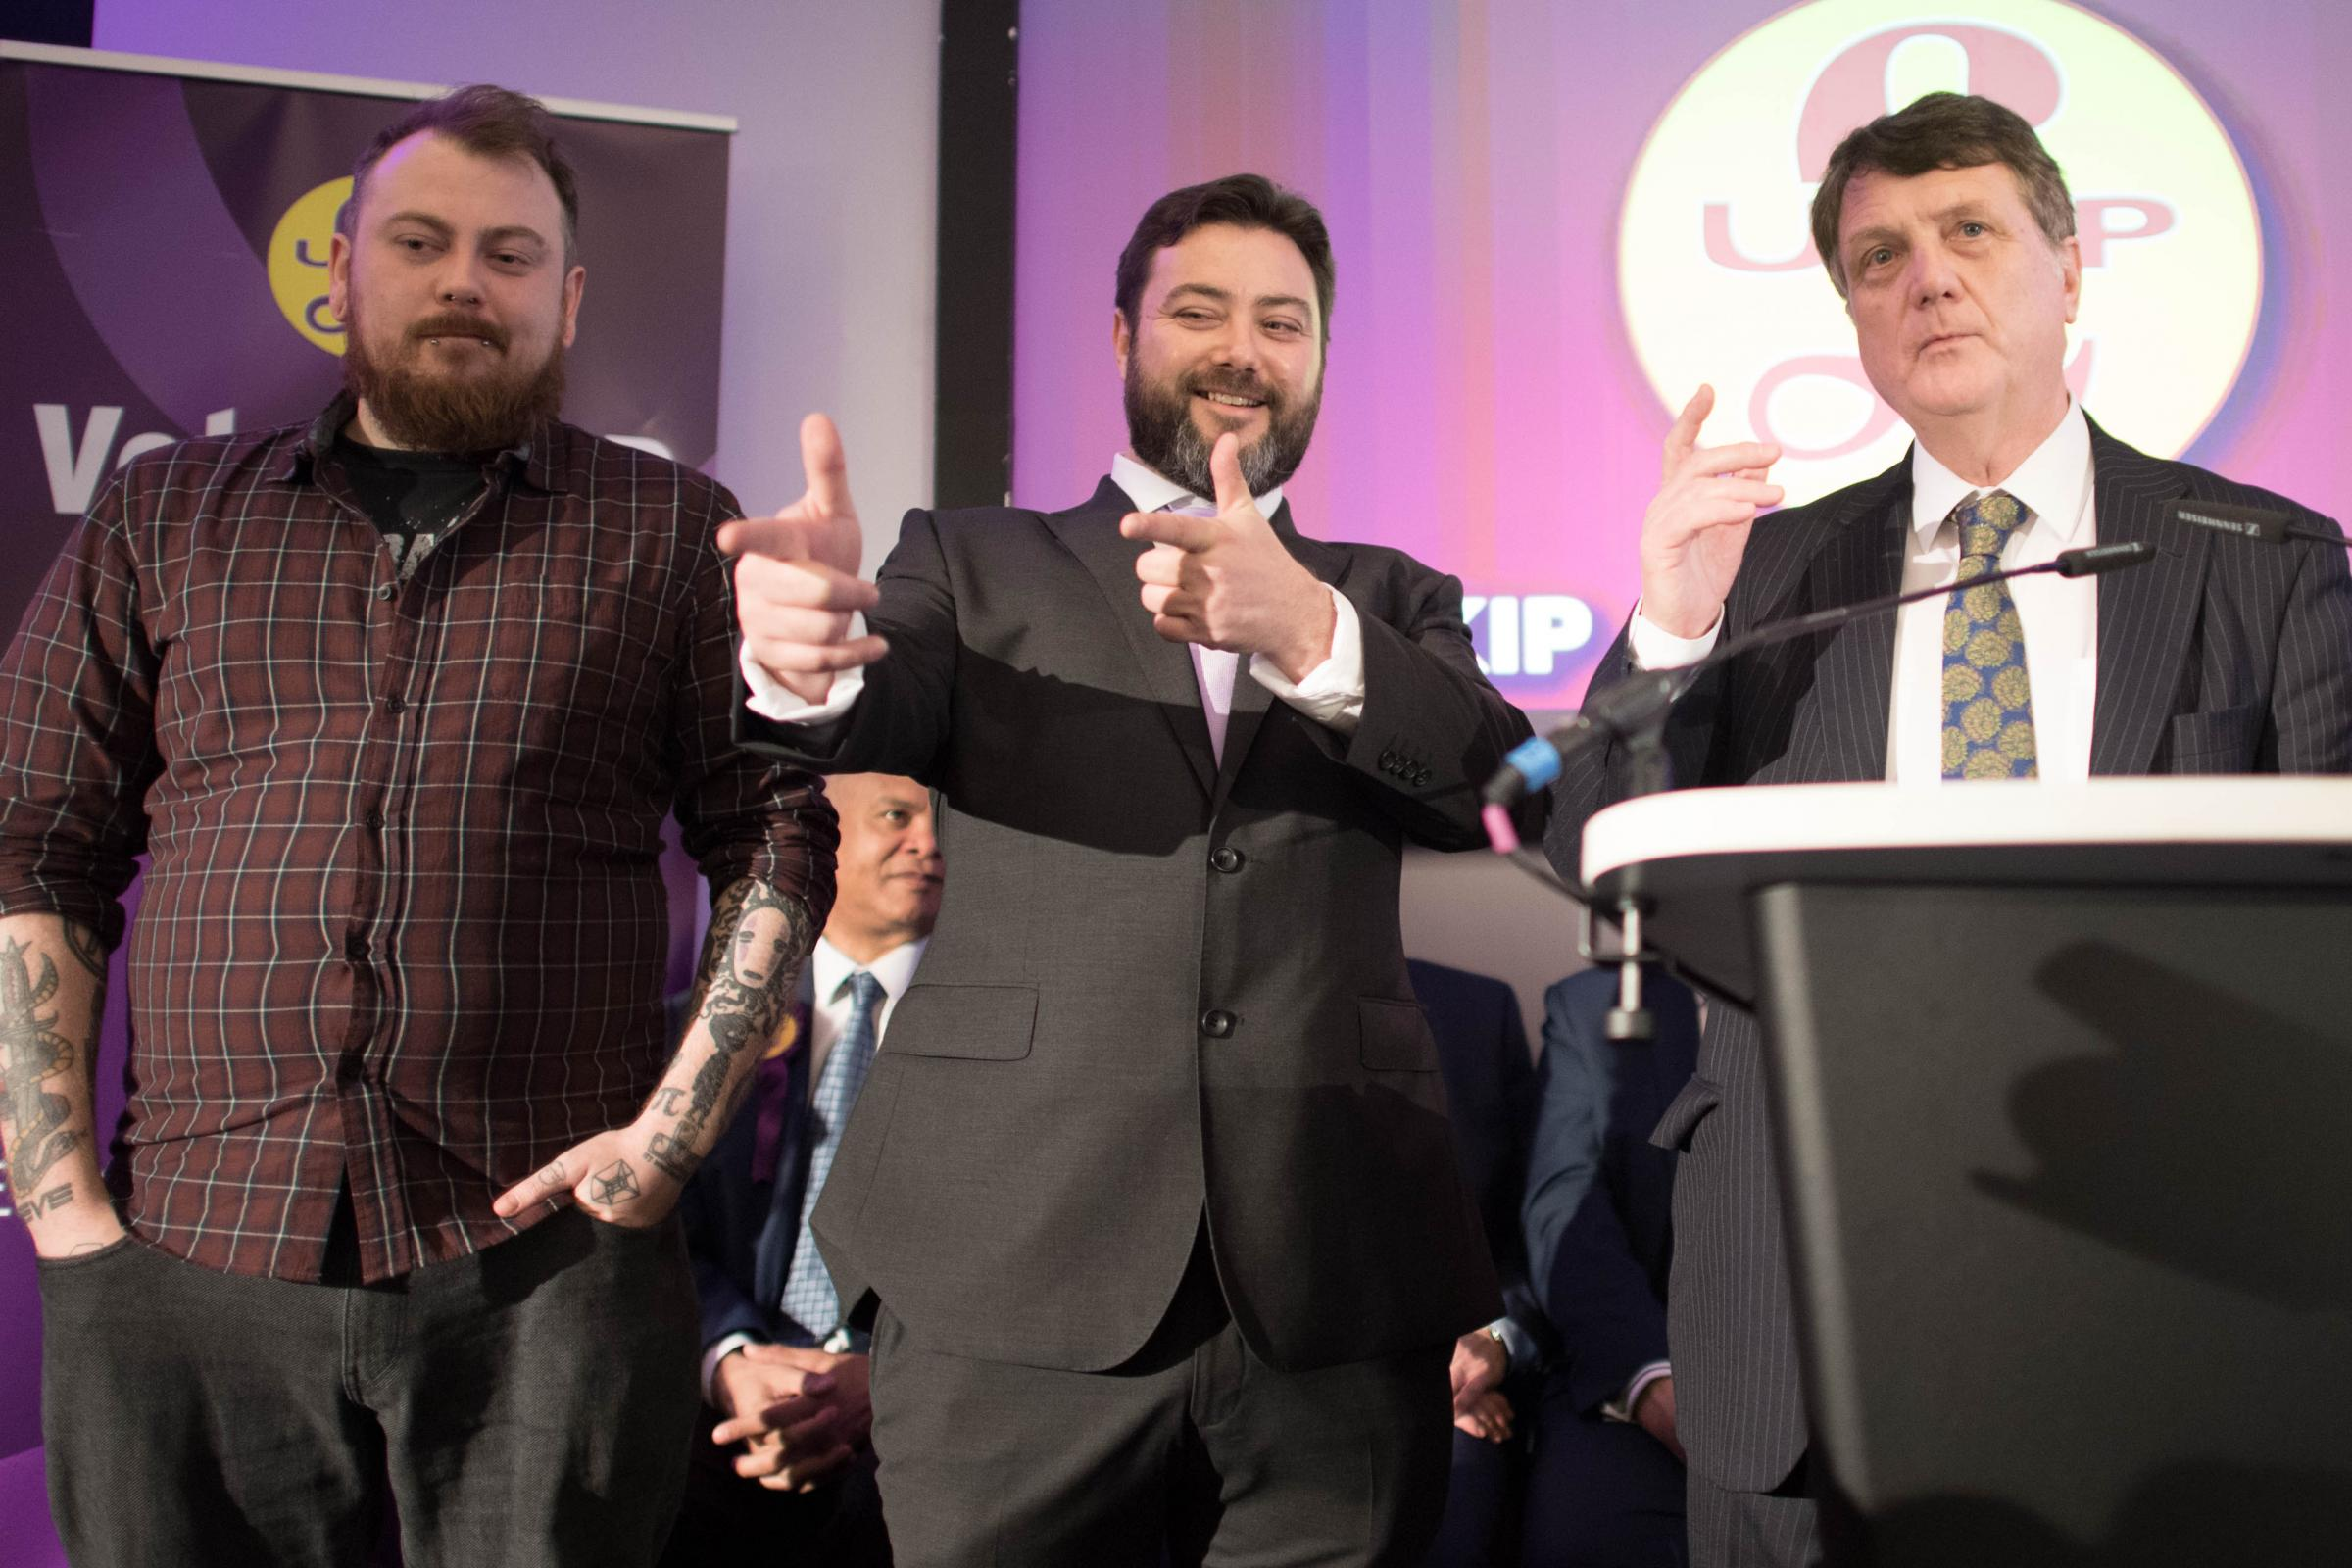 From left: Mark Meechan, Carl Benjamin (aka Sargon of Akkad) and Gerard Batten